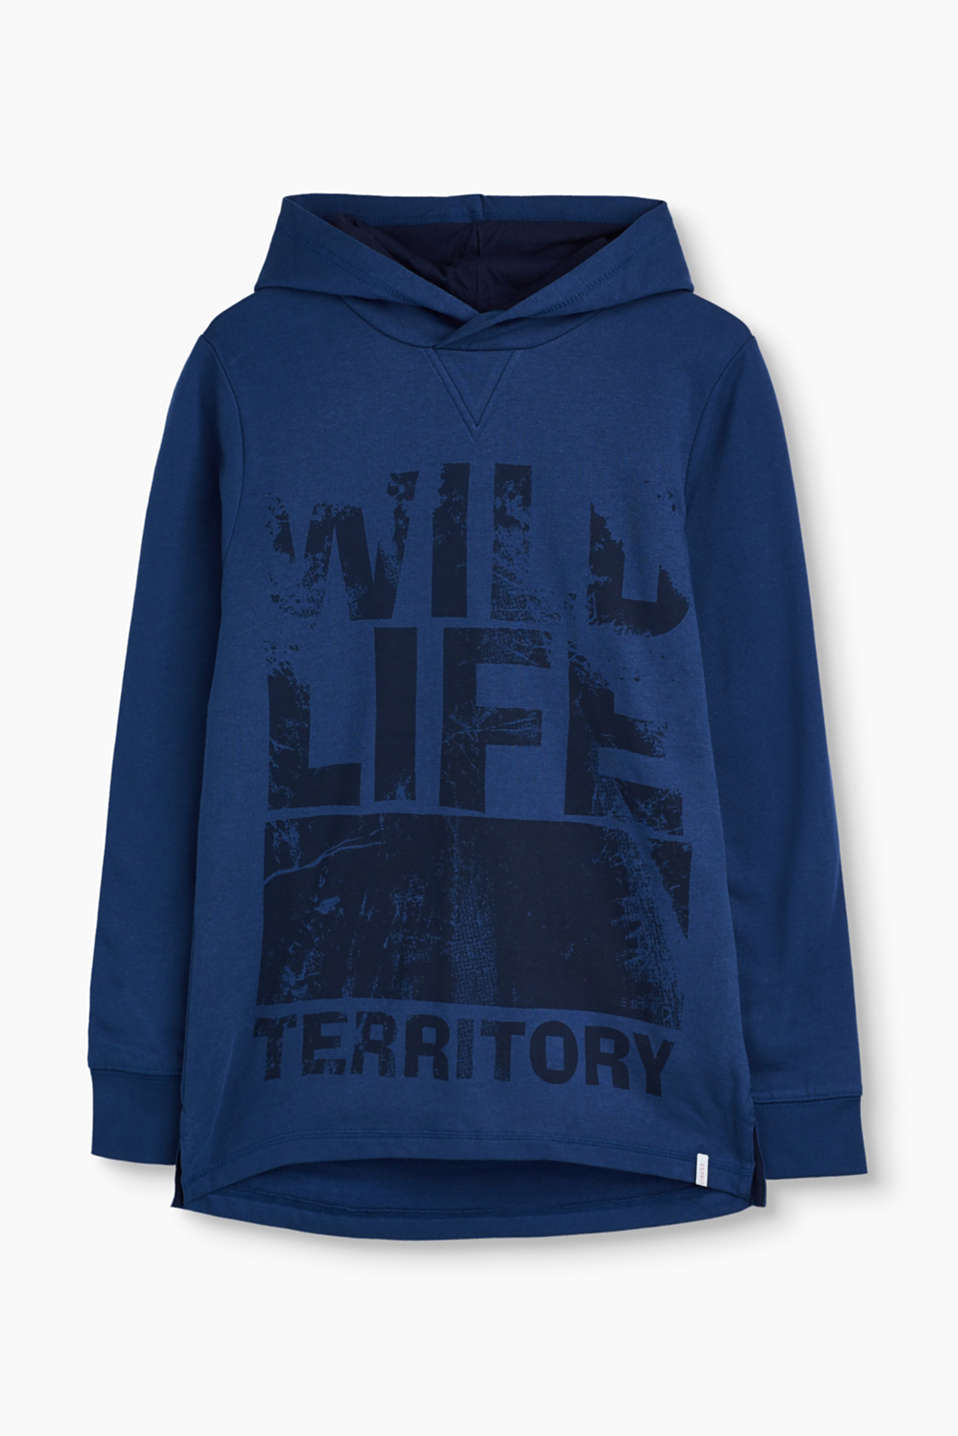 Casual, cool and super comfortable: elongated hooded sweatshirt with a large wildlife print.